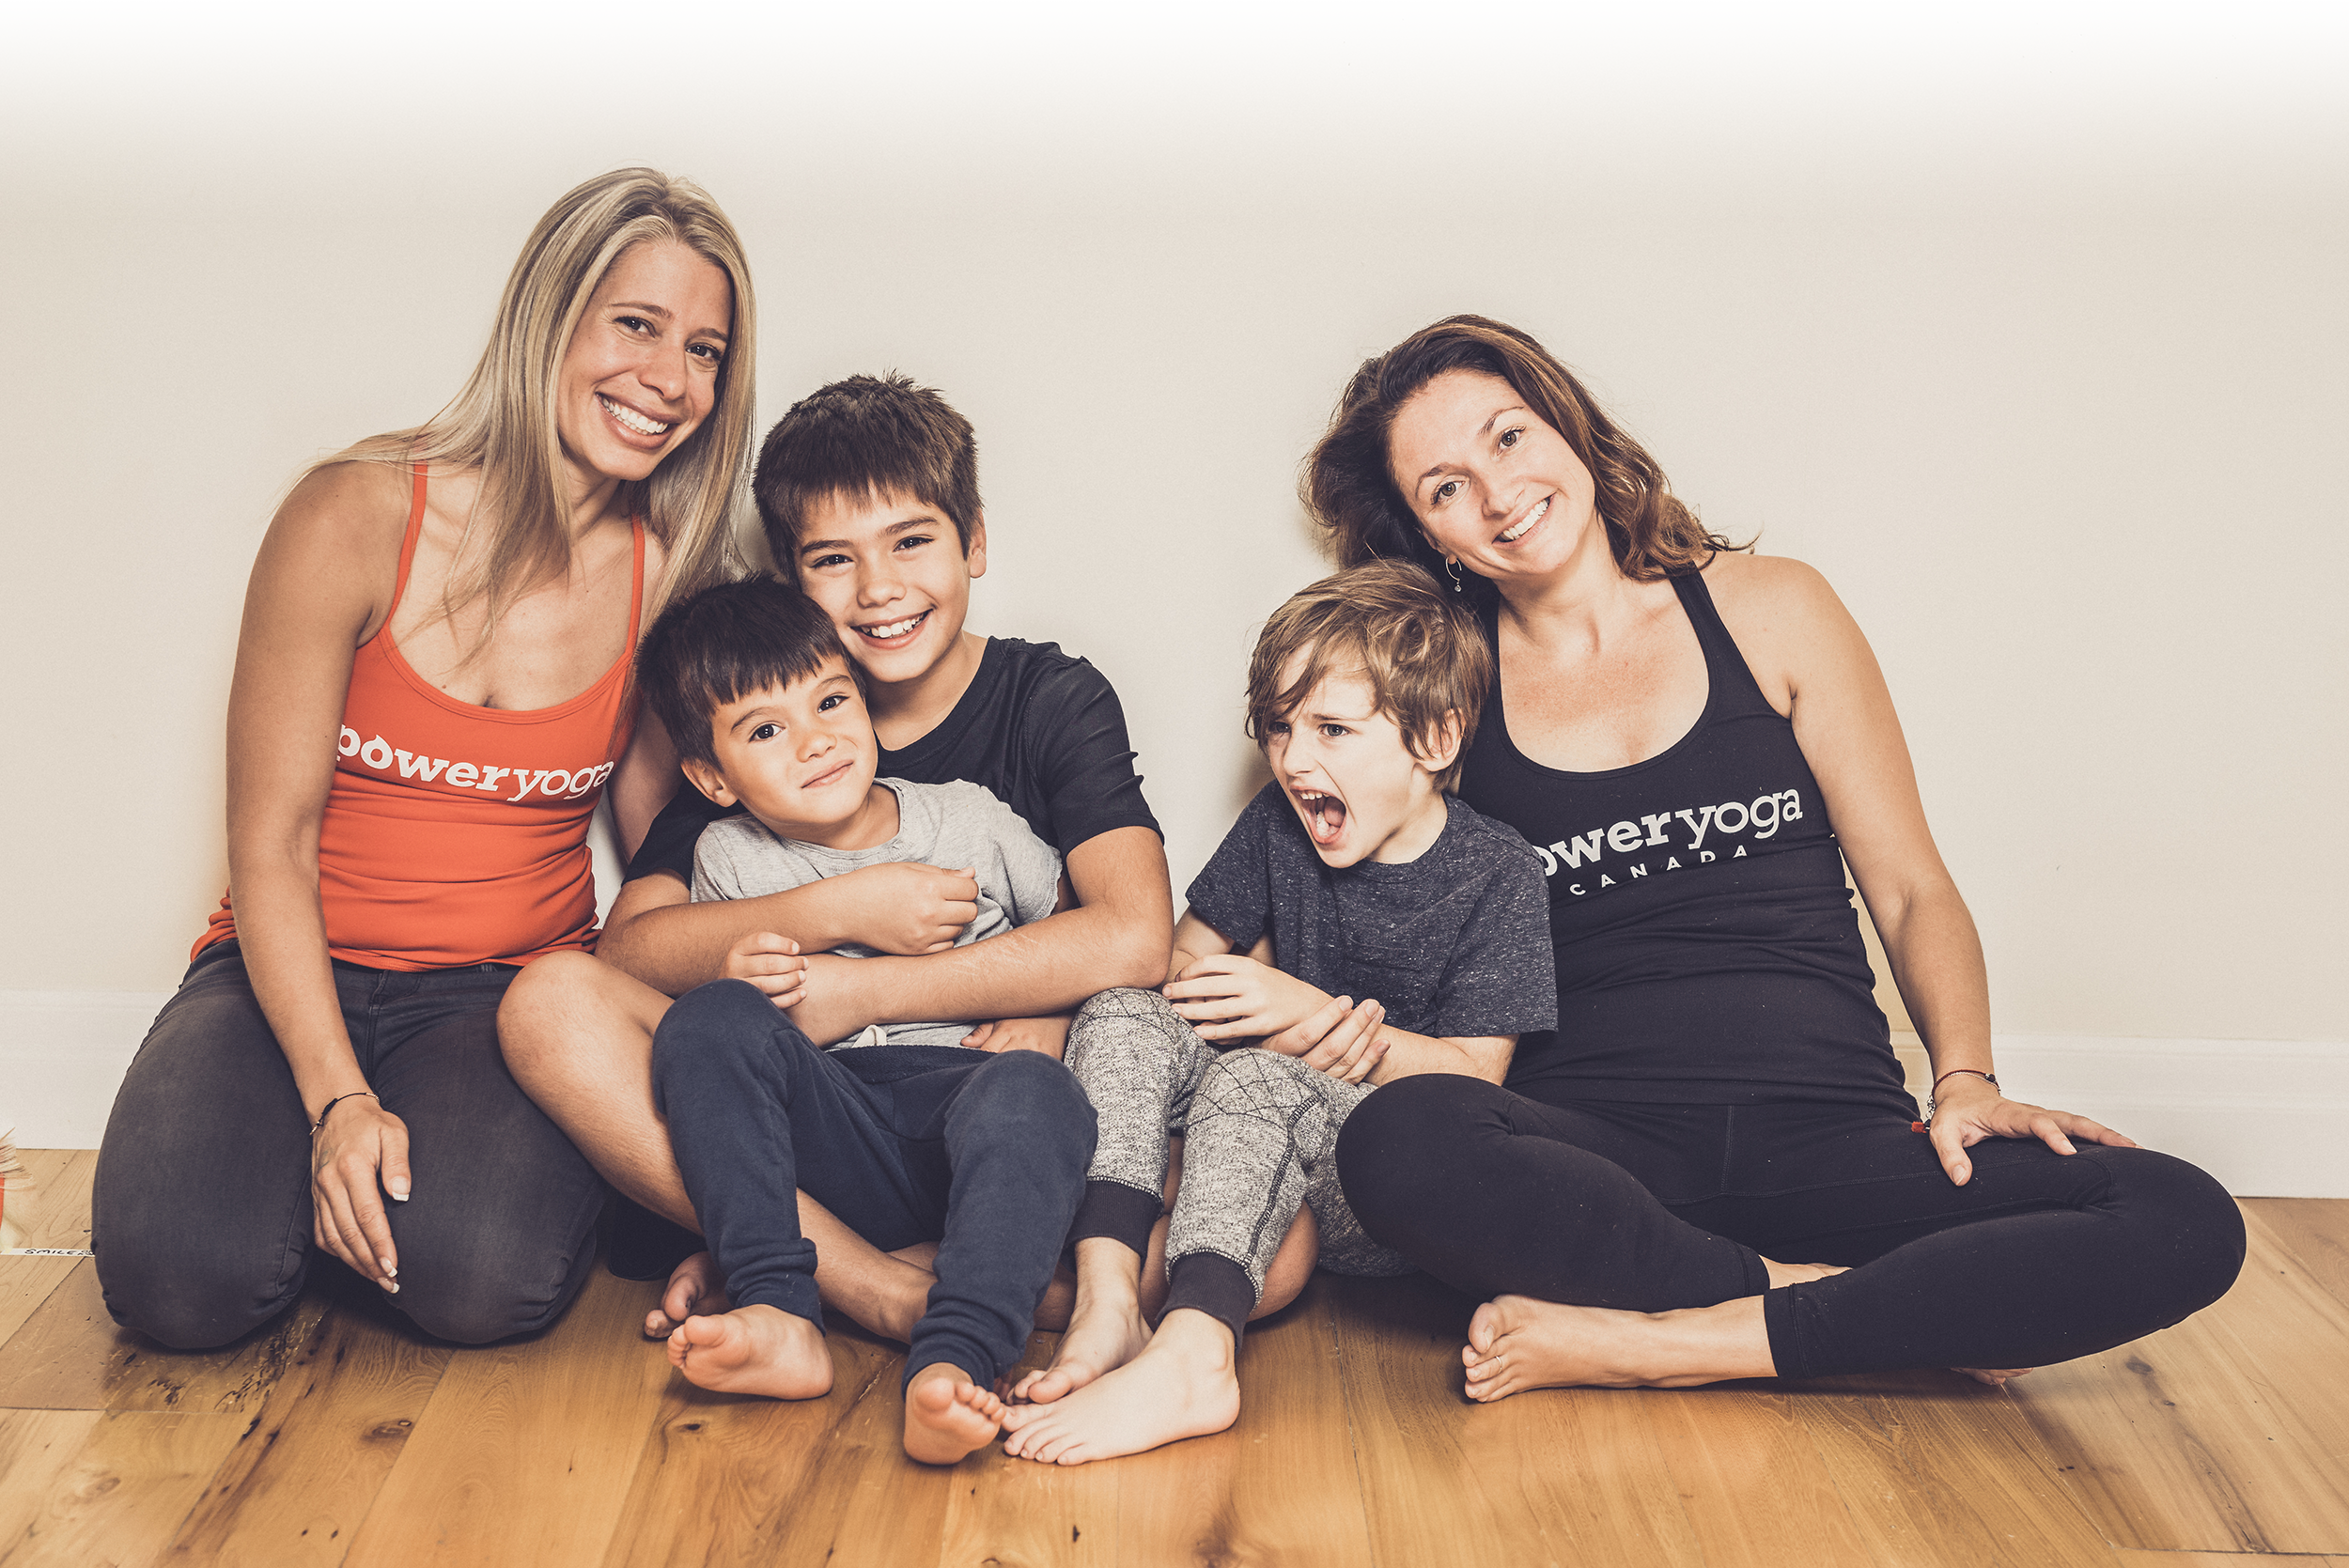 Yoga instructors (Pauline and Kin) wearing Power Yoga Canada tank-tops posing with kids